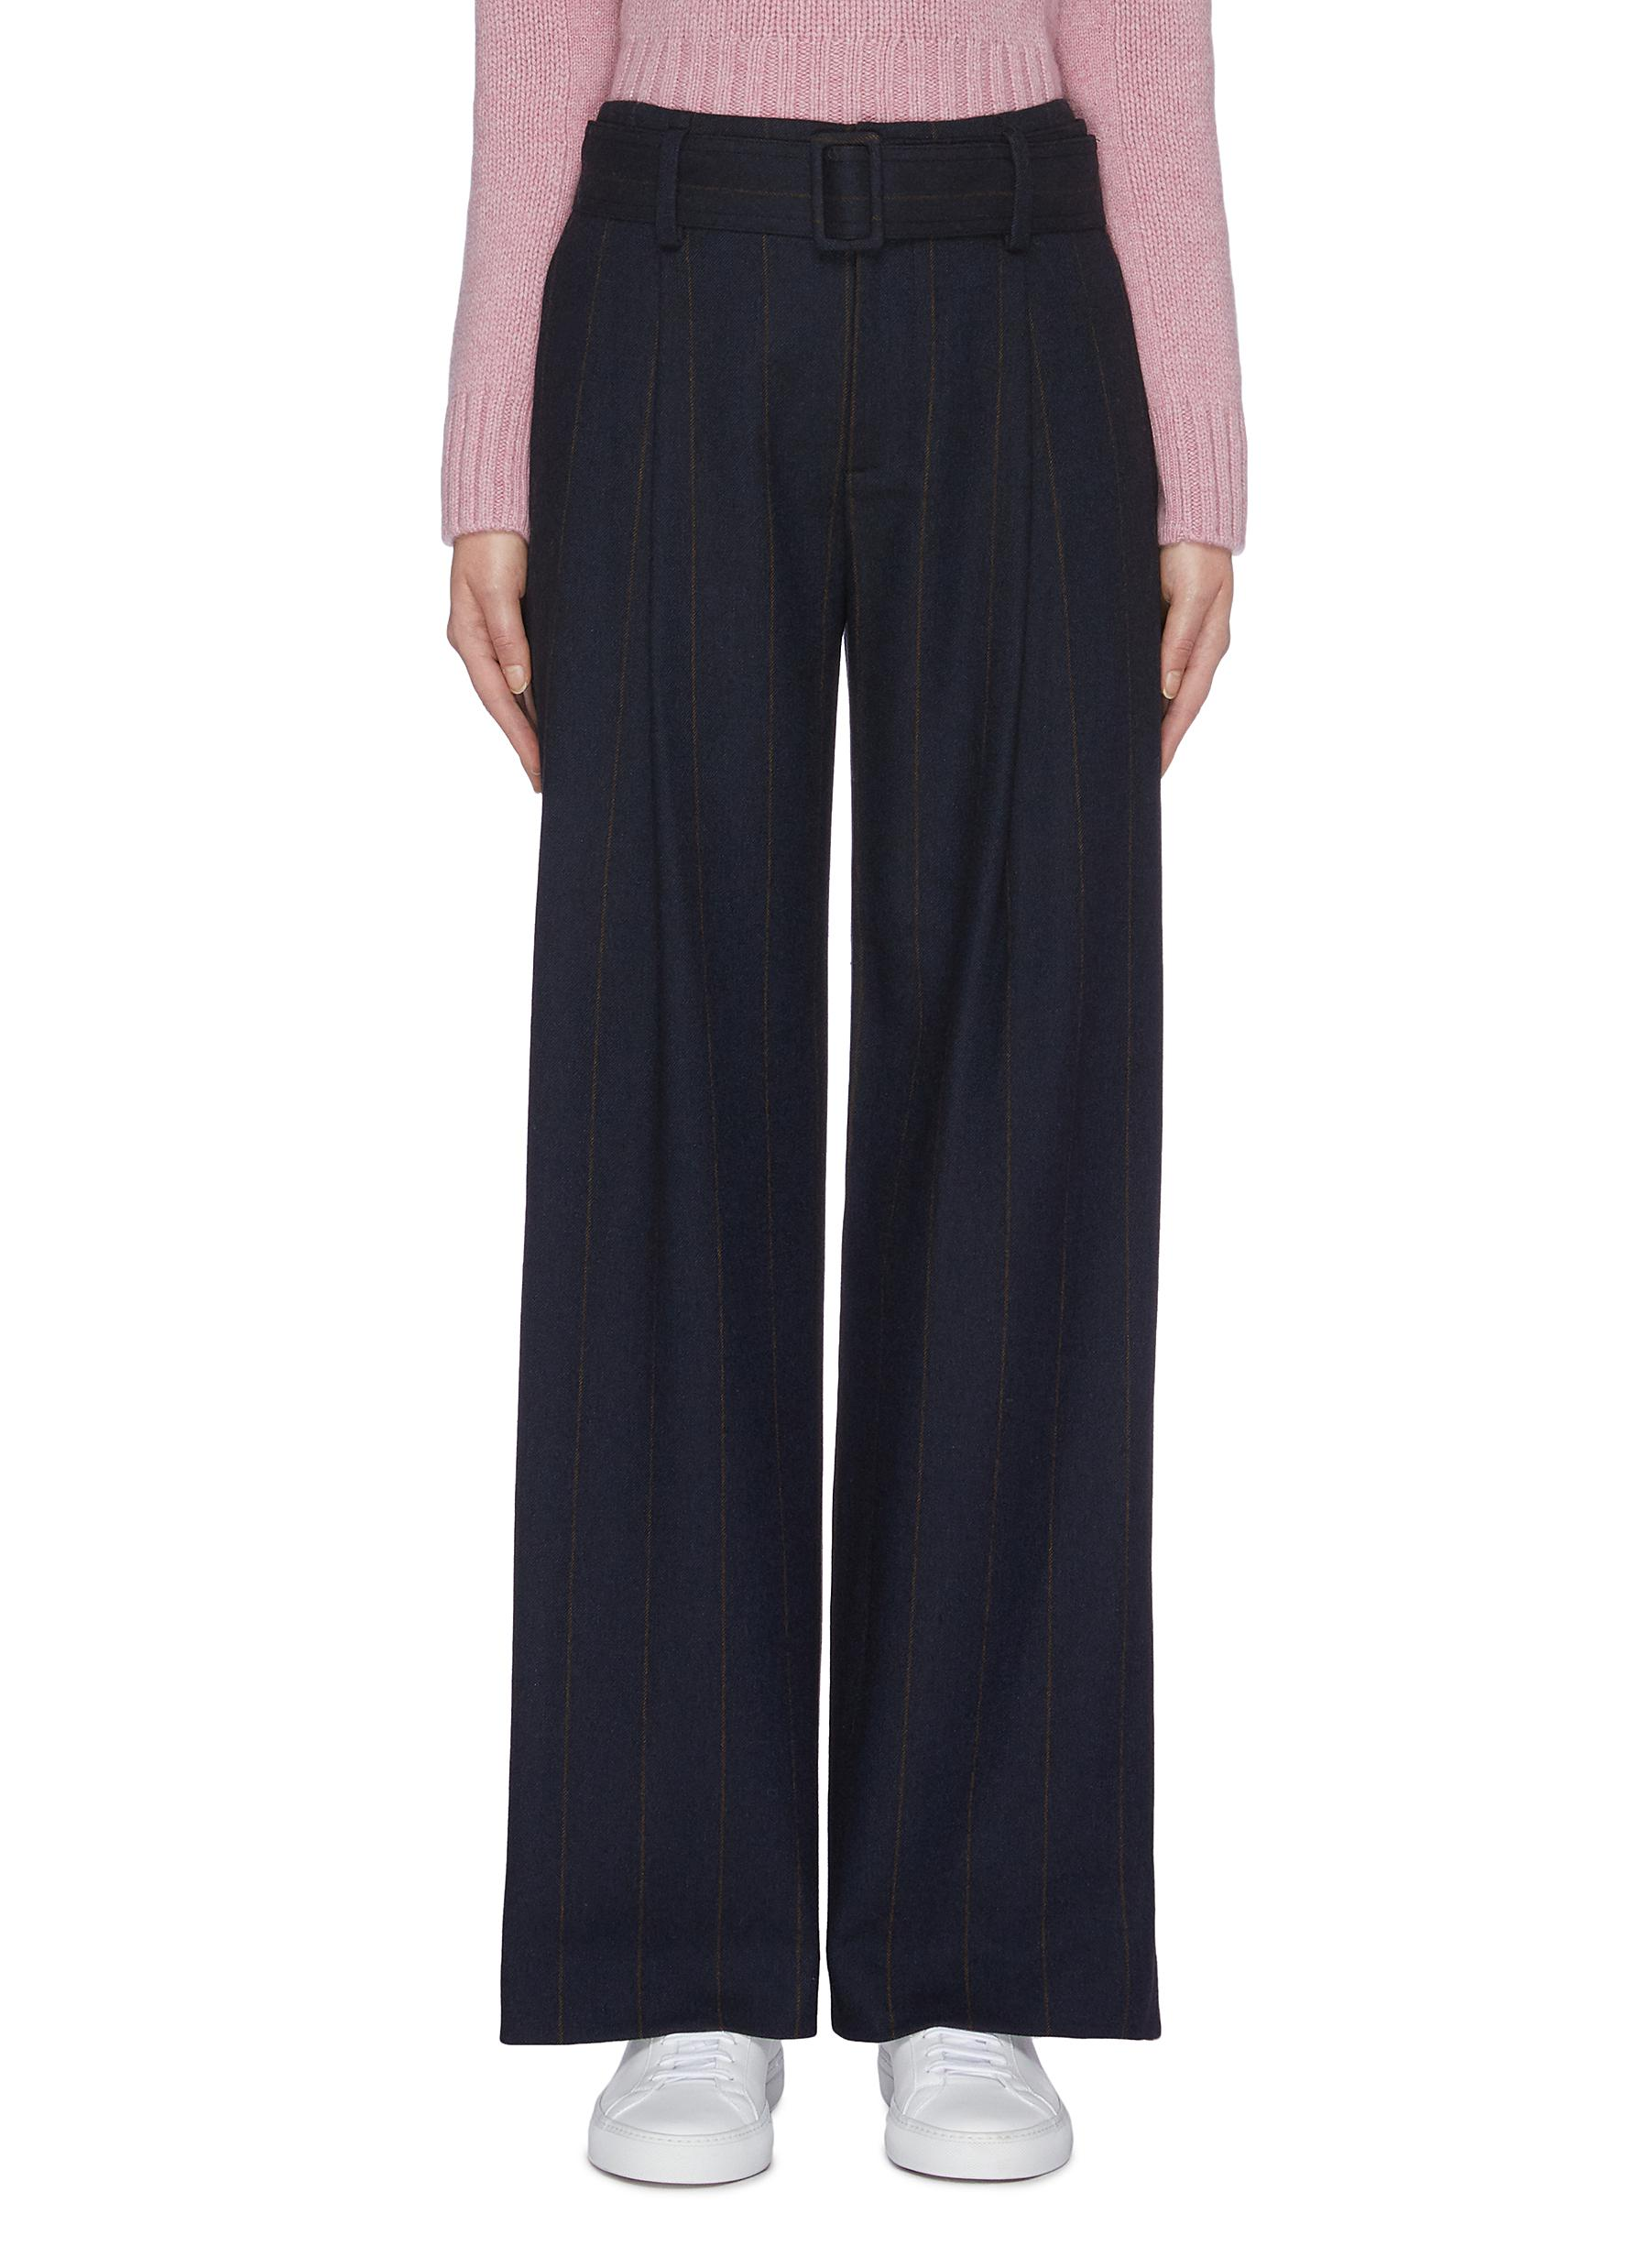 Belted pinstripe flannel wide leg pants by Vince